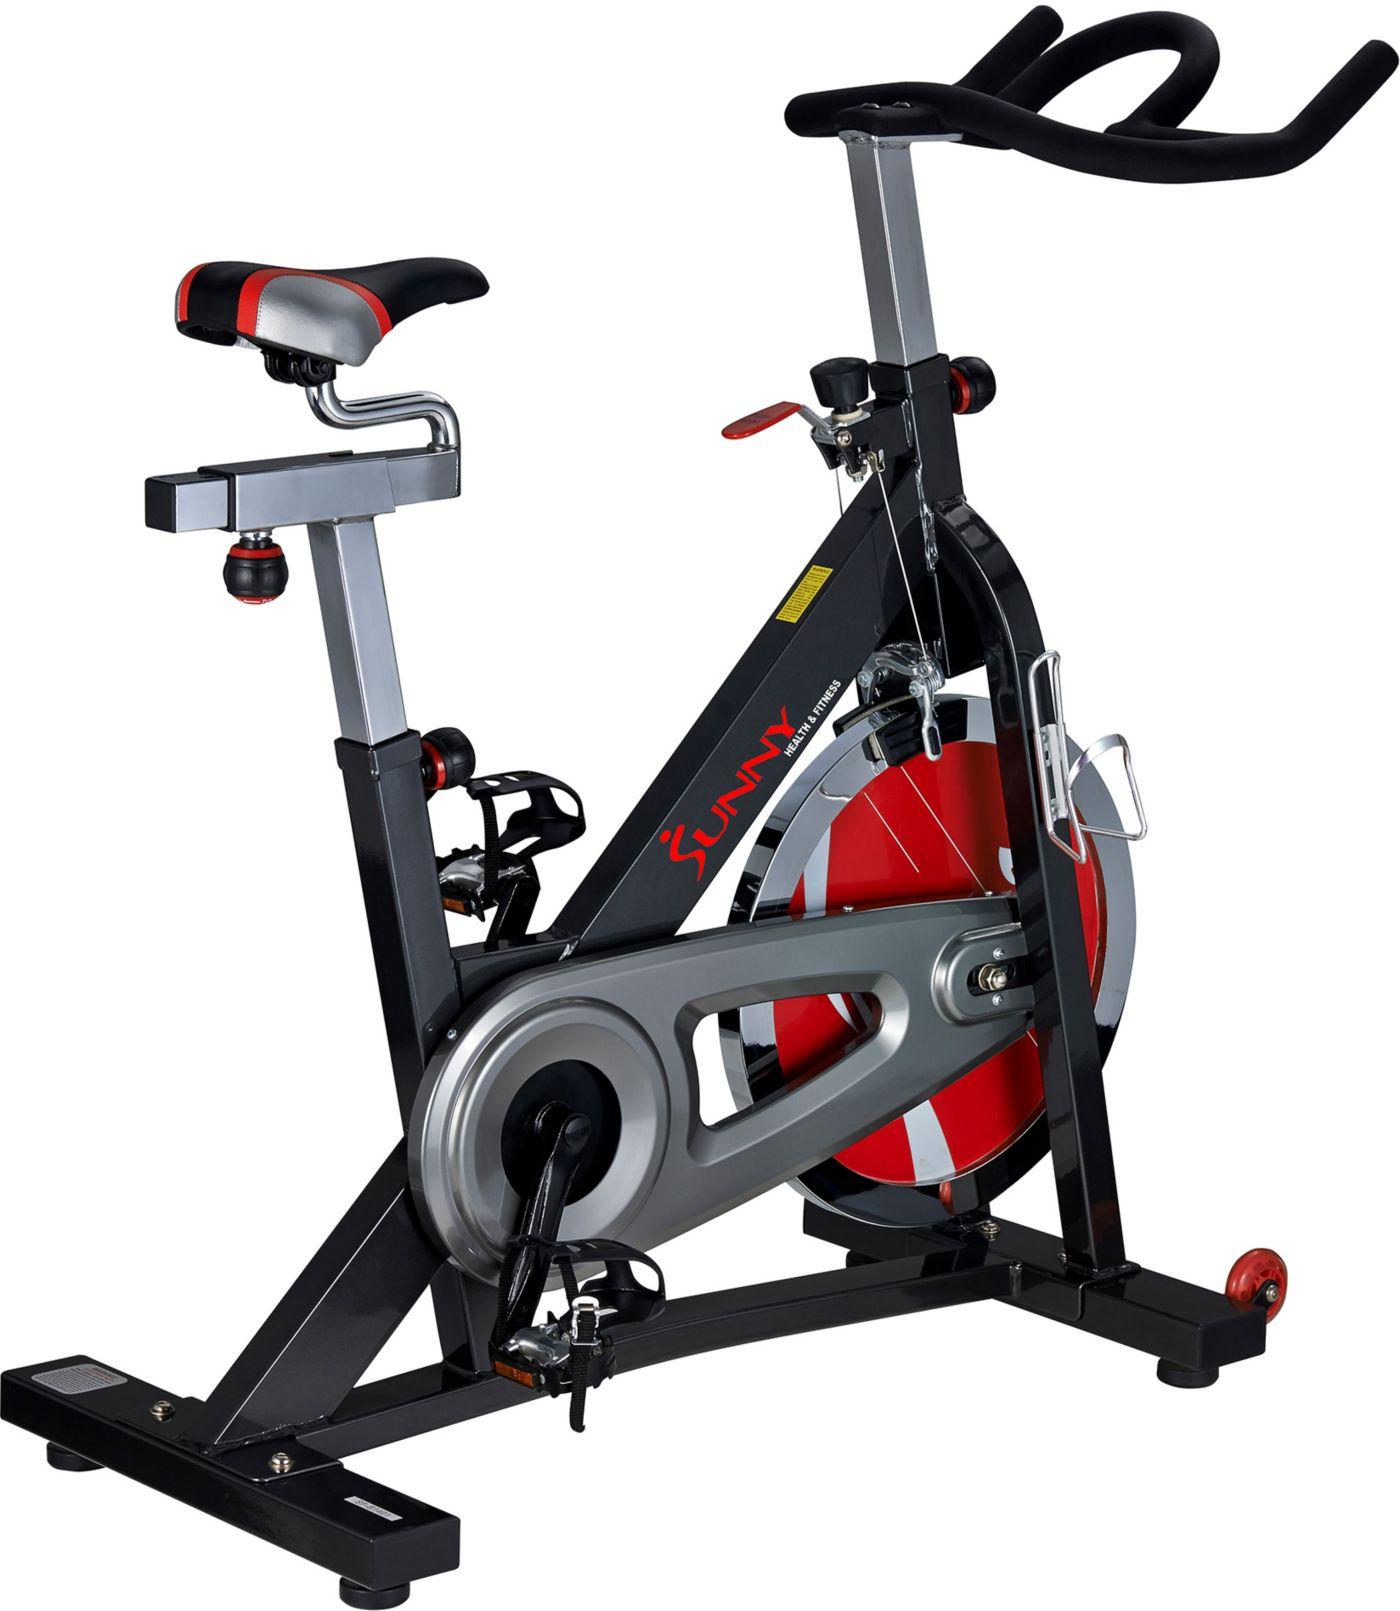 Sunny Health & Fitness SF-B1401 Indoor Cycling Exercise Bike